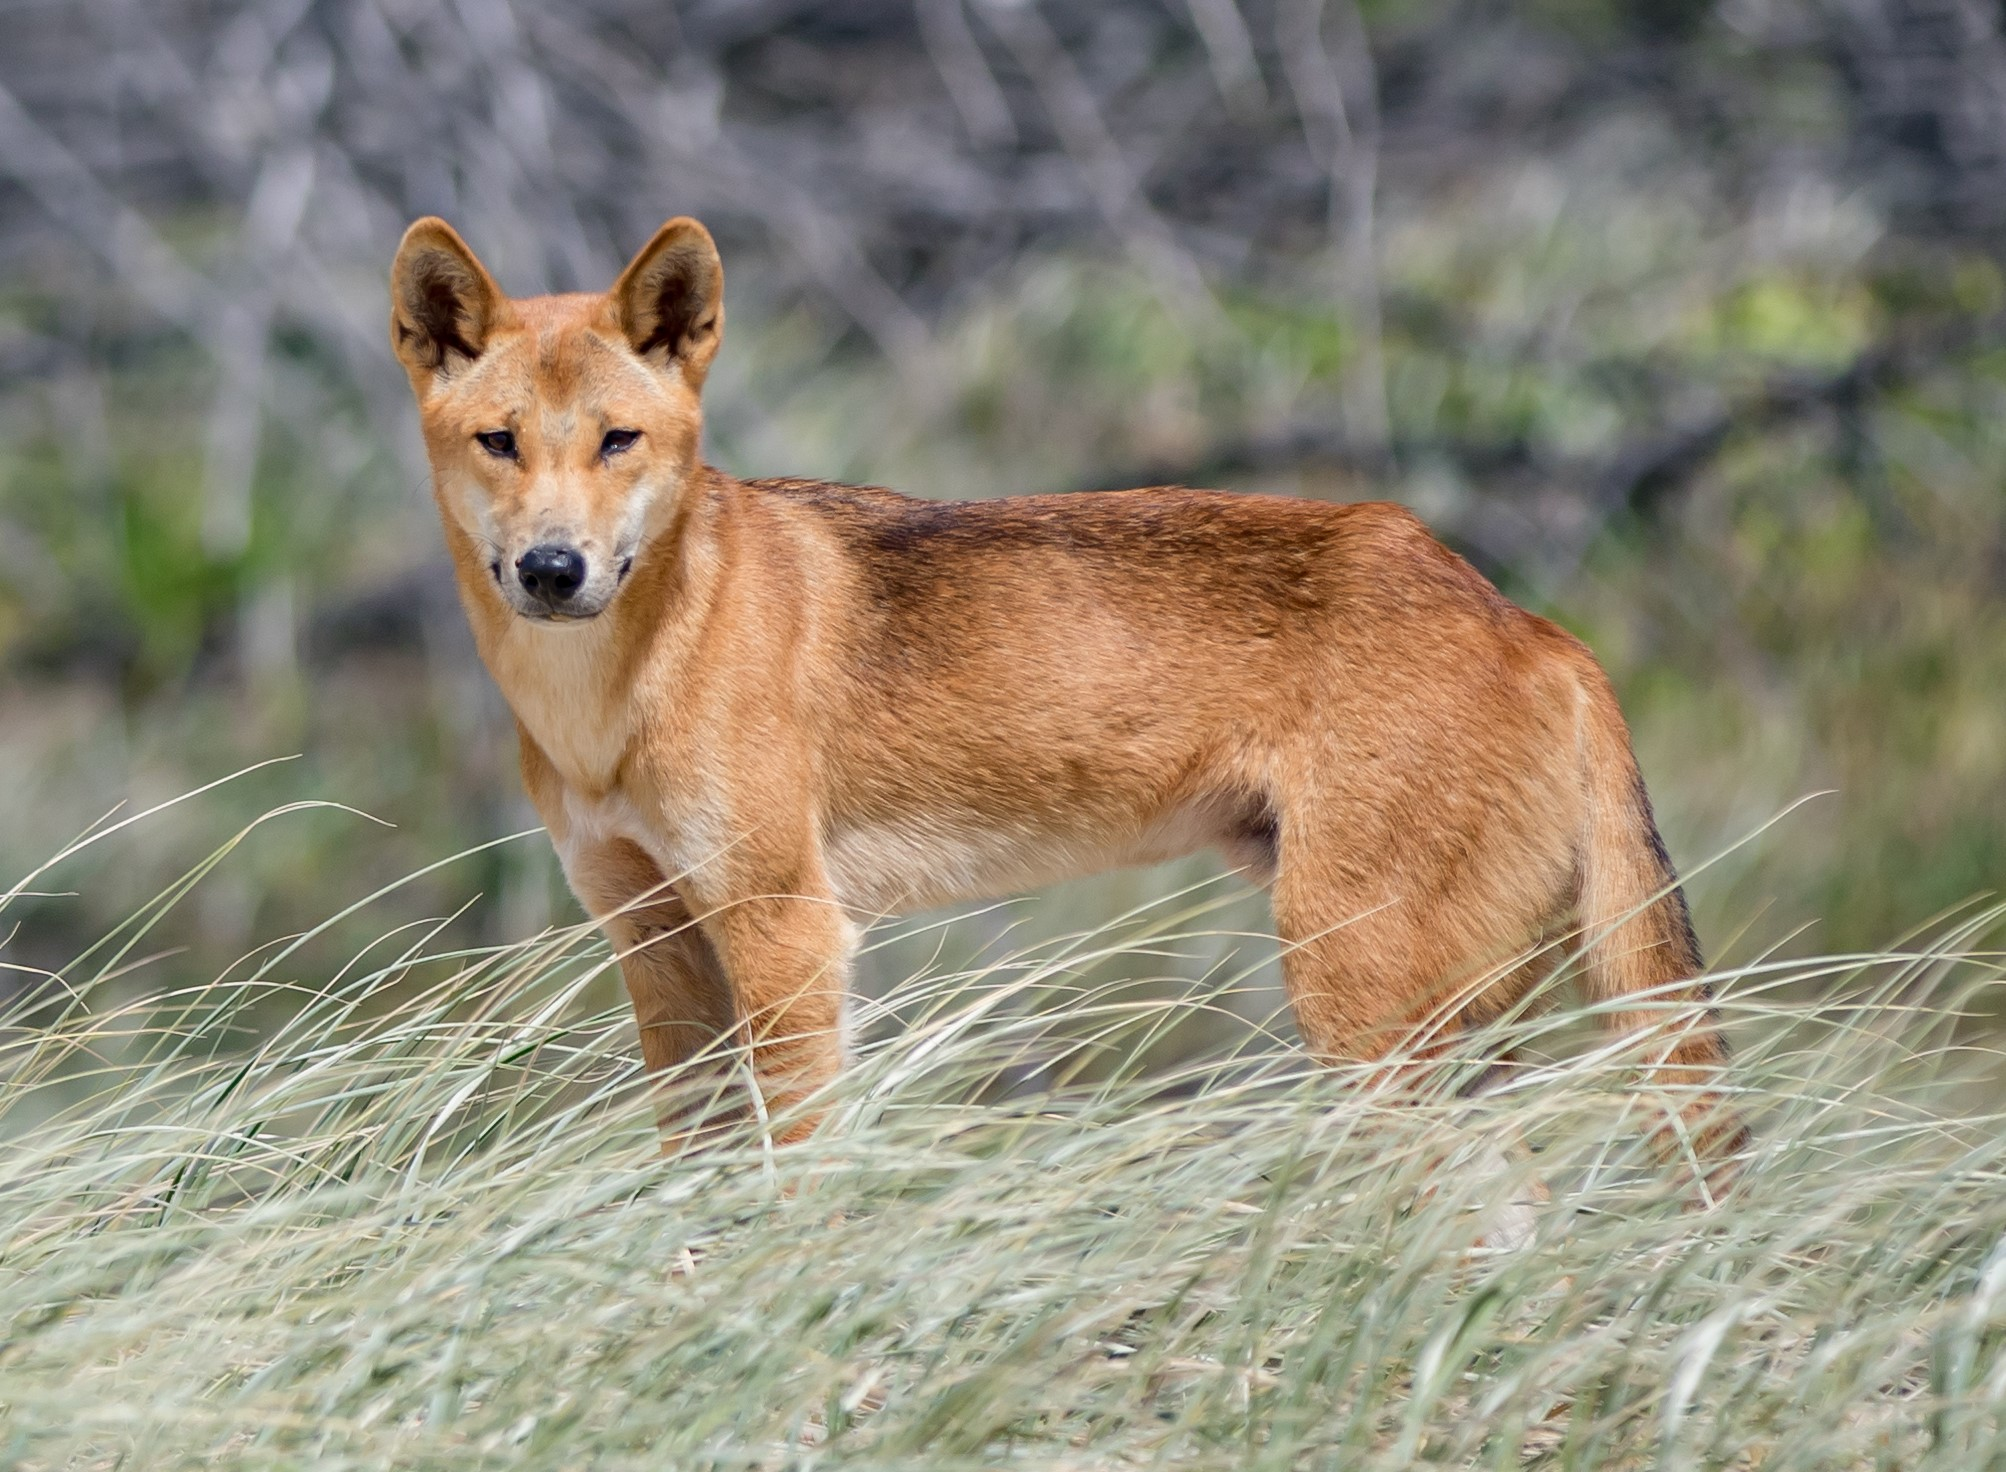 Australian researchers sound confident say dingo is not a dog, a new species